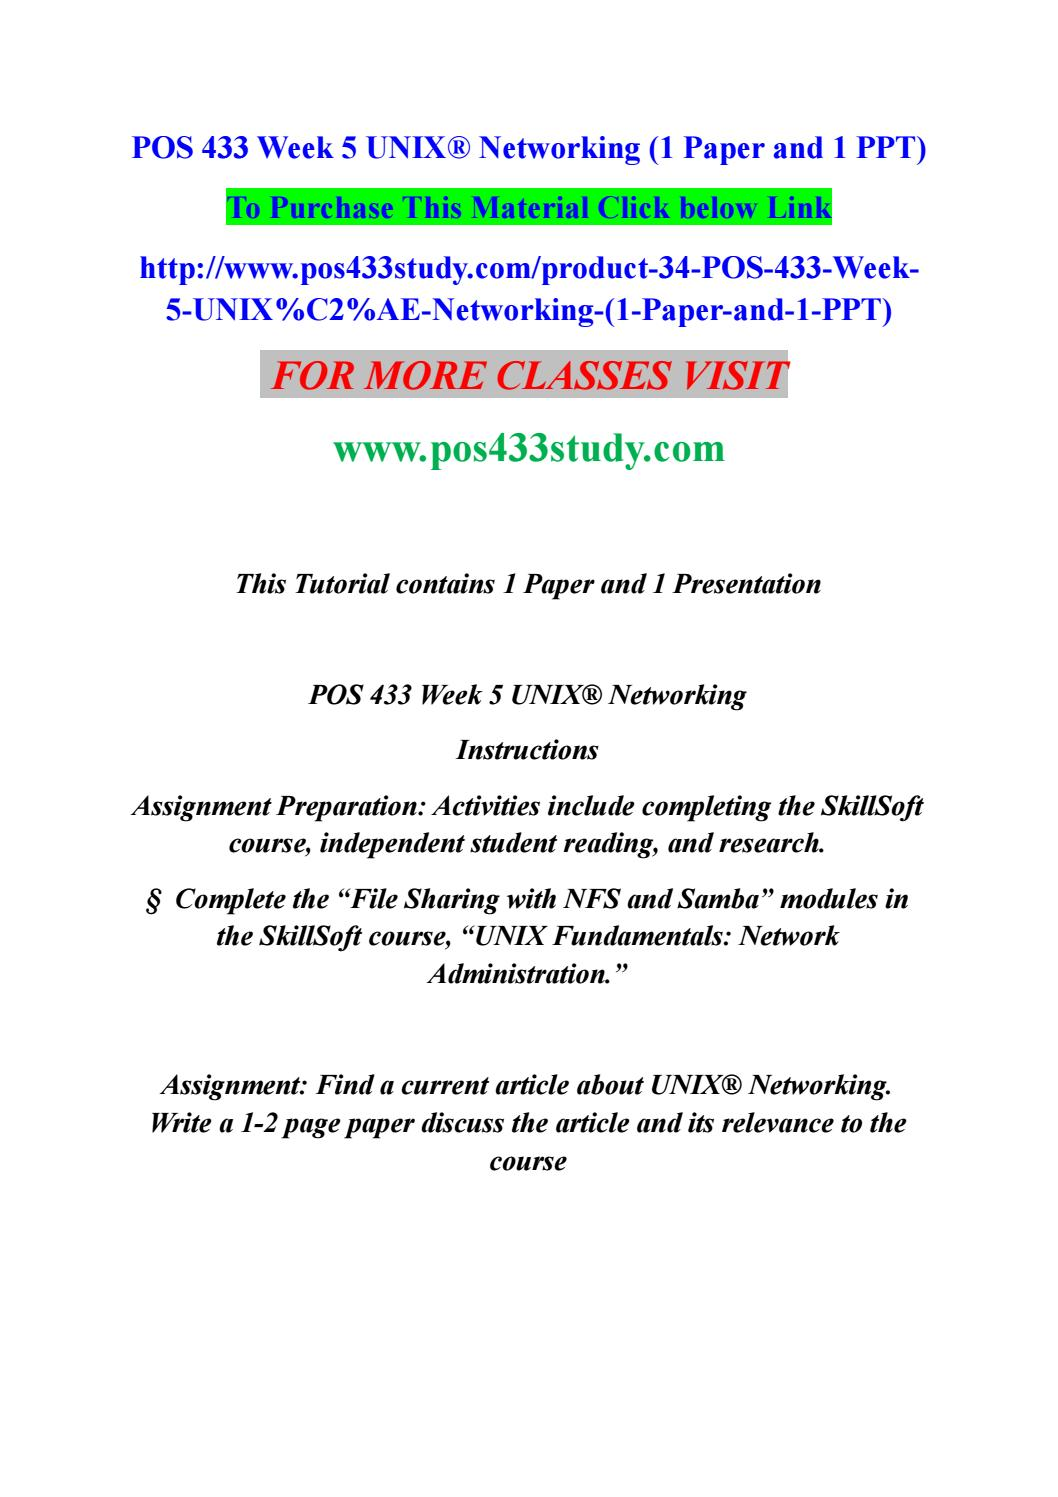 Pos 433 week 5 unix® networking (1 paper and 1 ppt) by tejesh4v - issuu